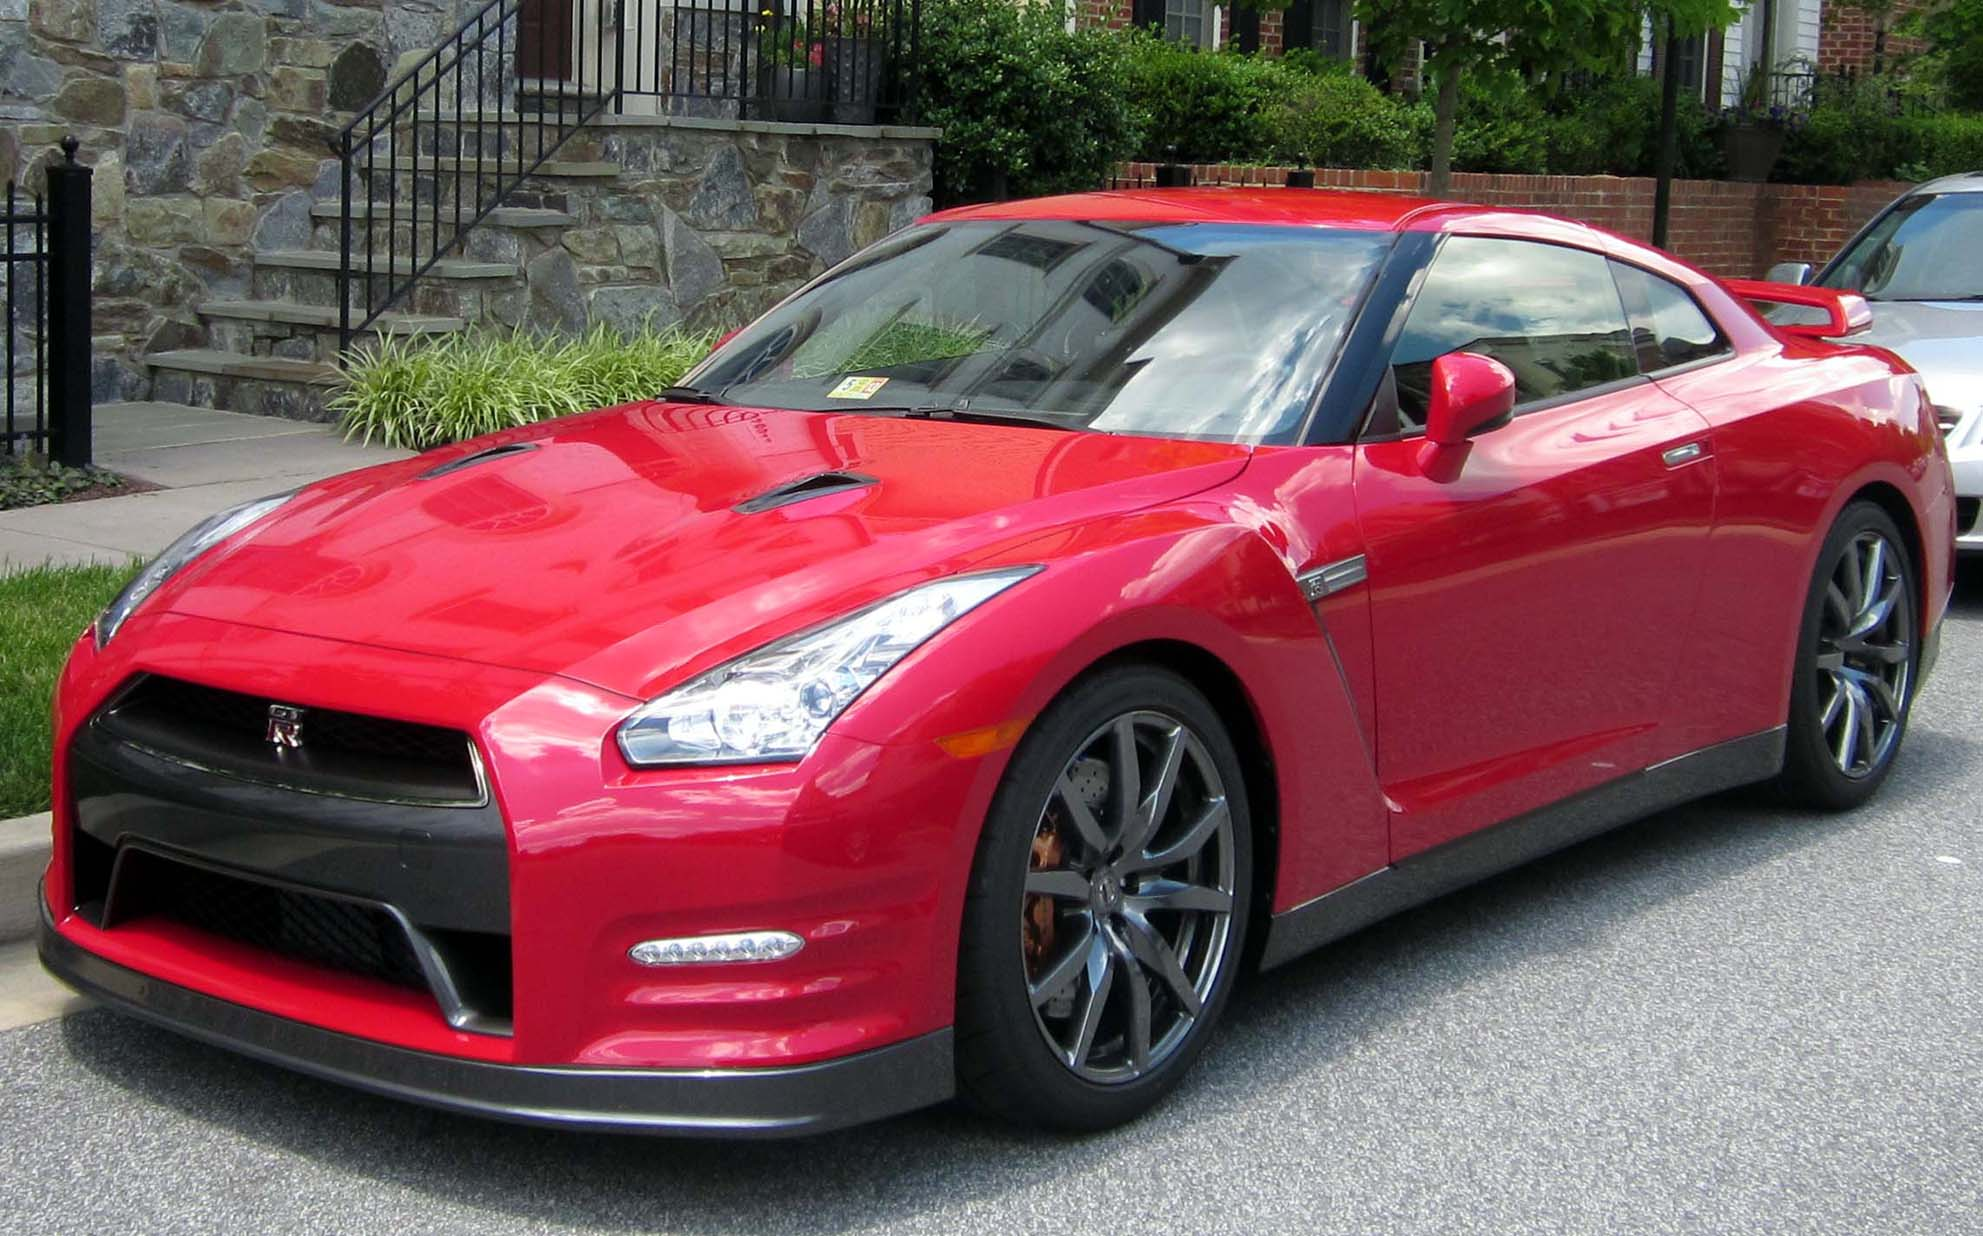 file:2013 nissan gt-r -- 06-23-2012 1 - wikimedia commons